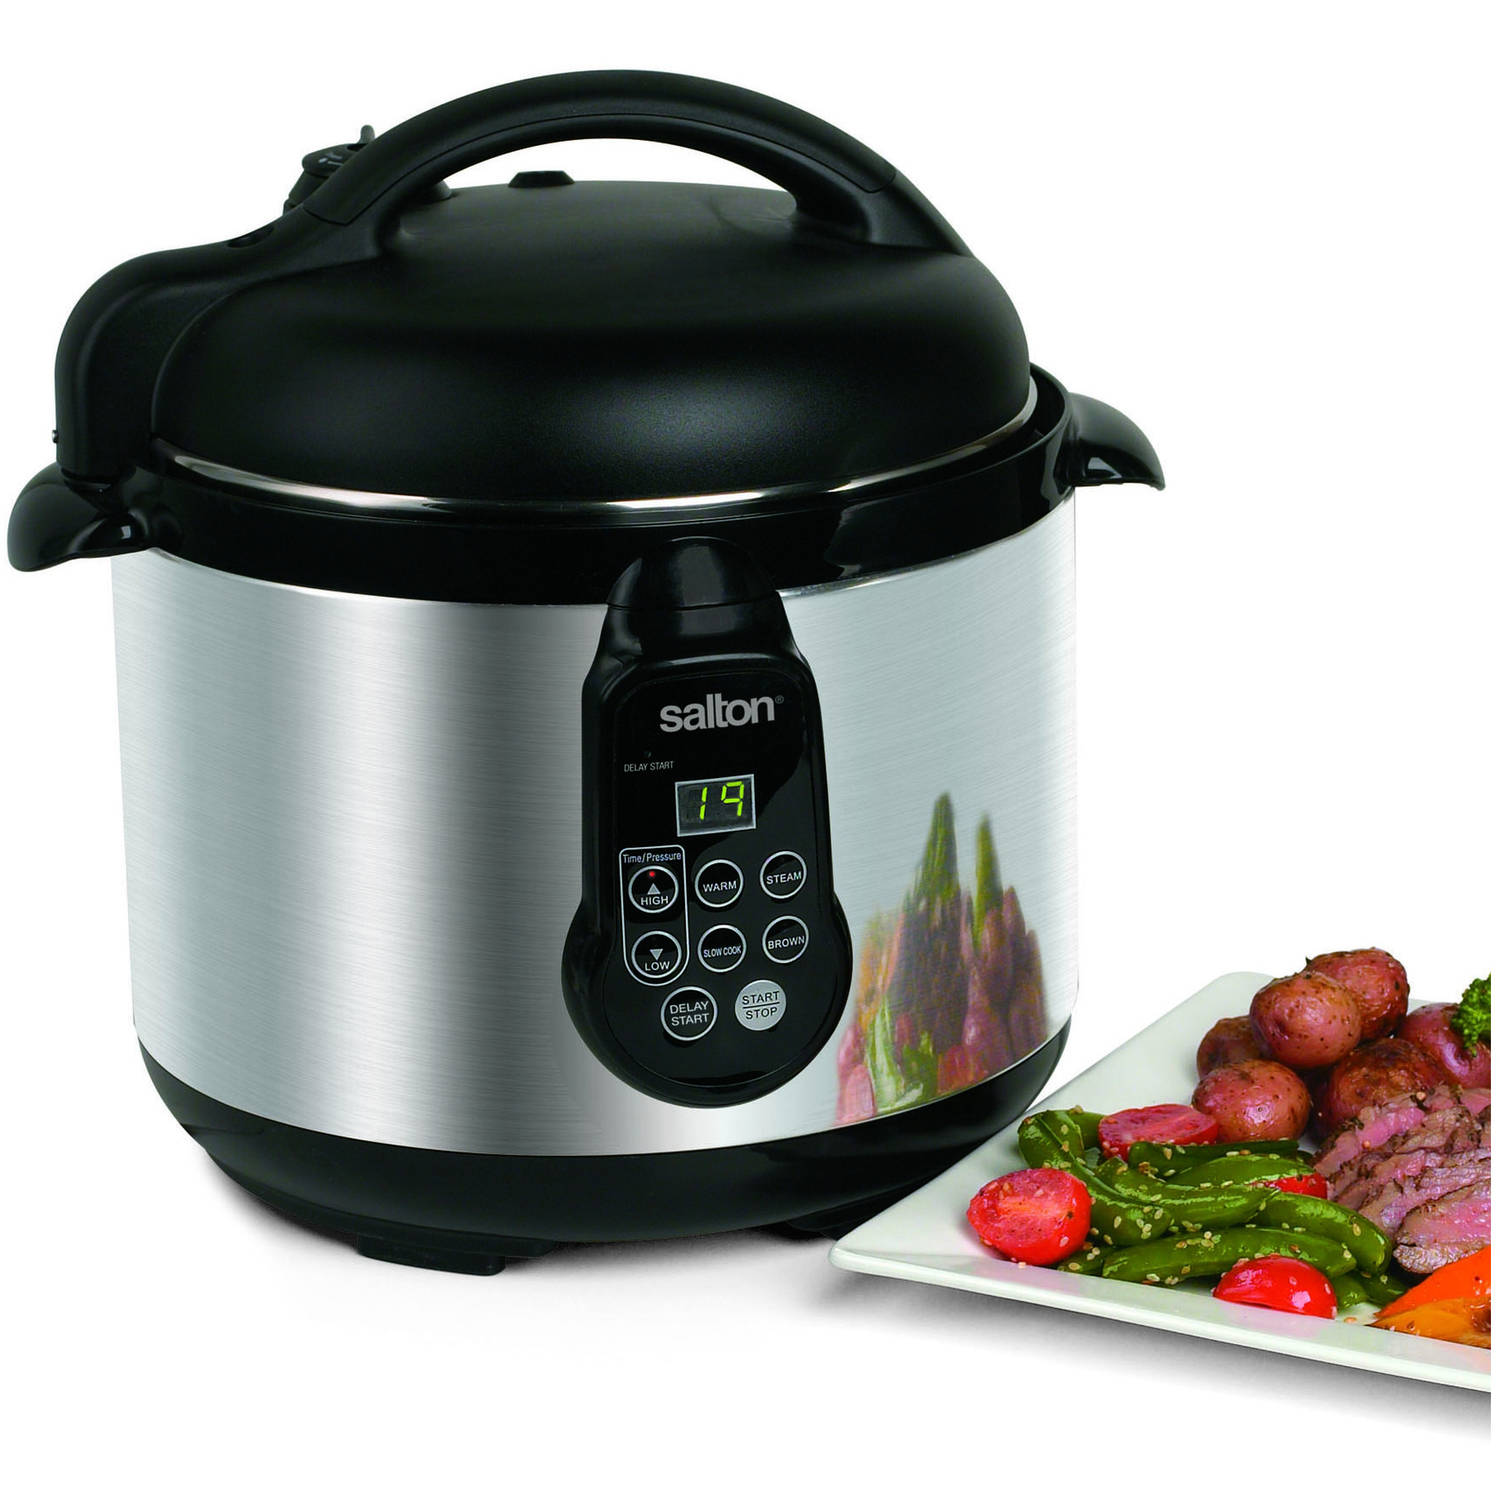 Salton 5-in-1 Electronic Pressure Cooker, 5L